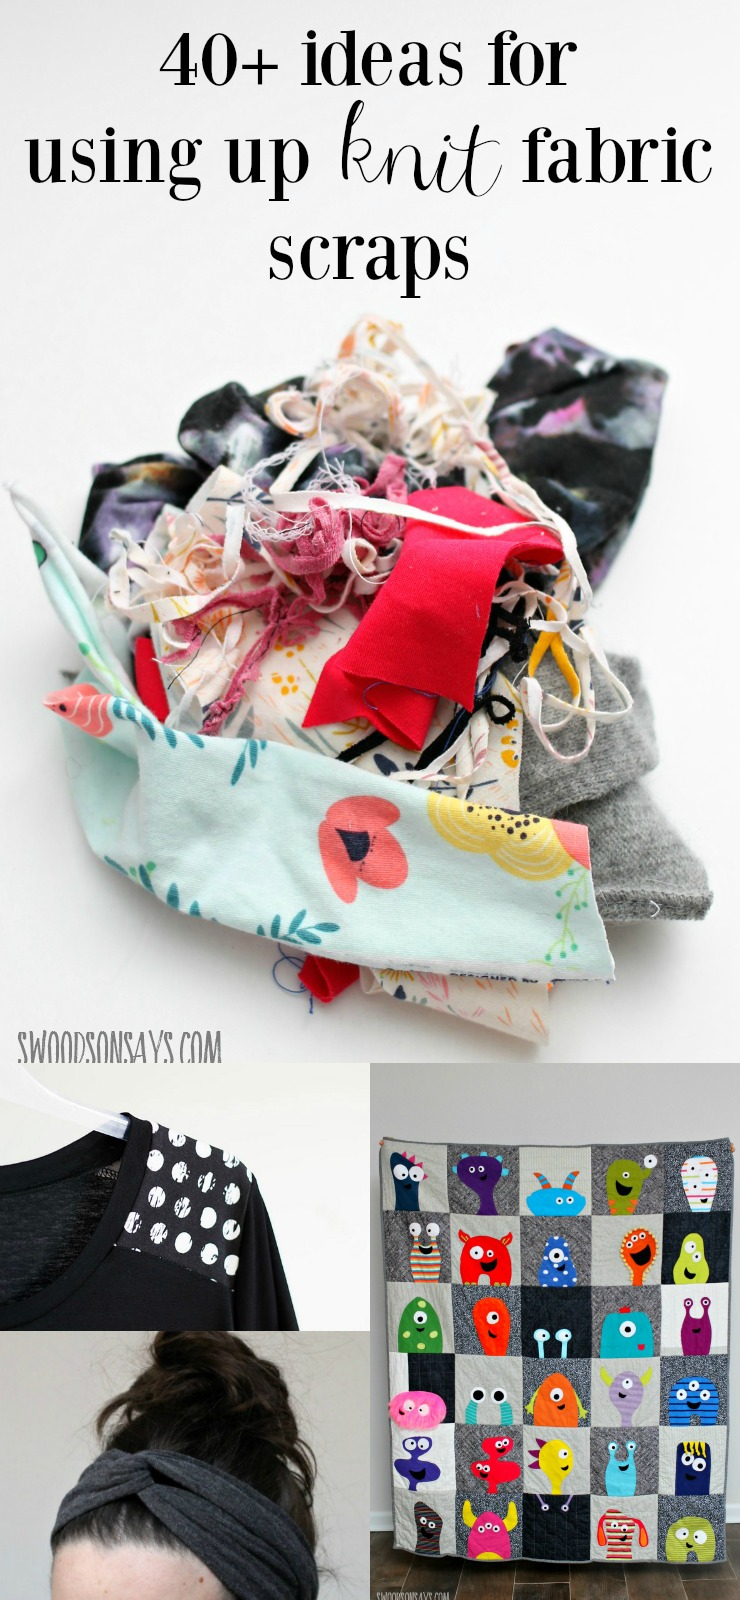 Not sure what to do with knit fabric scraps? Don't throw them away! I have a huge list of ideas for using up knit fabric scraps of all sizes with scrapbuster tutorials and recycling tips.